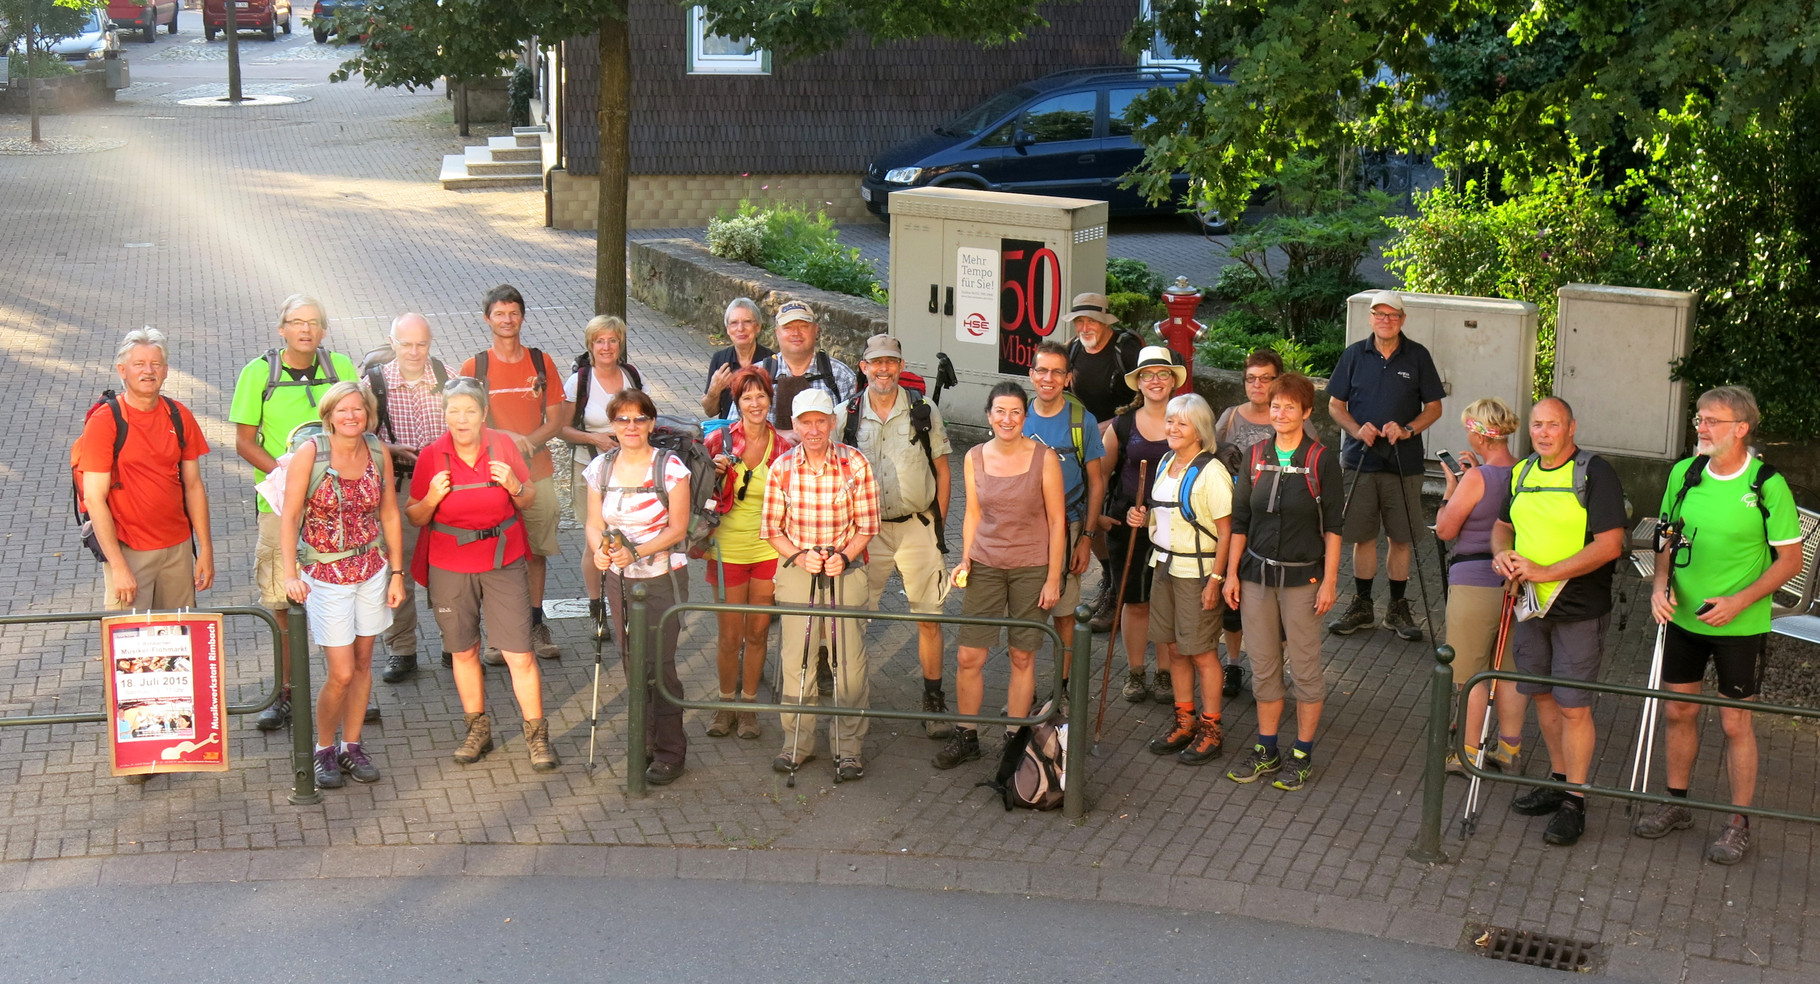 Wandermarathon 2015 - Start in Rimbach